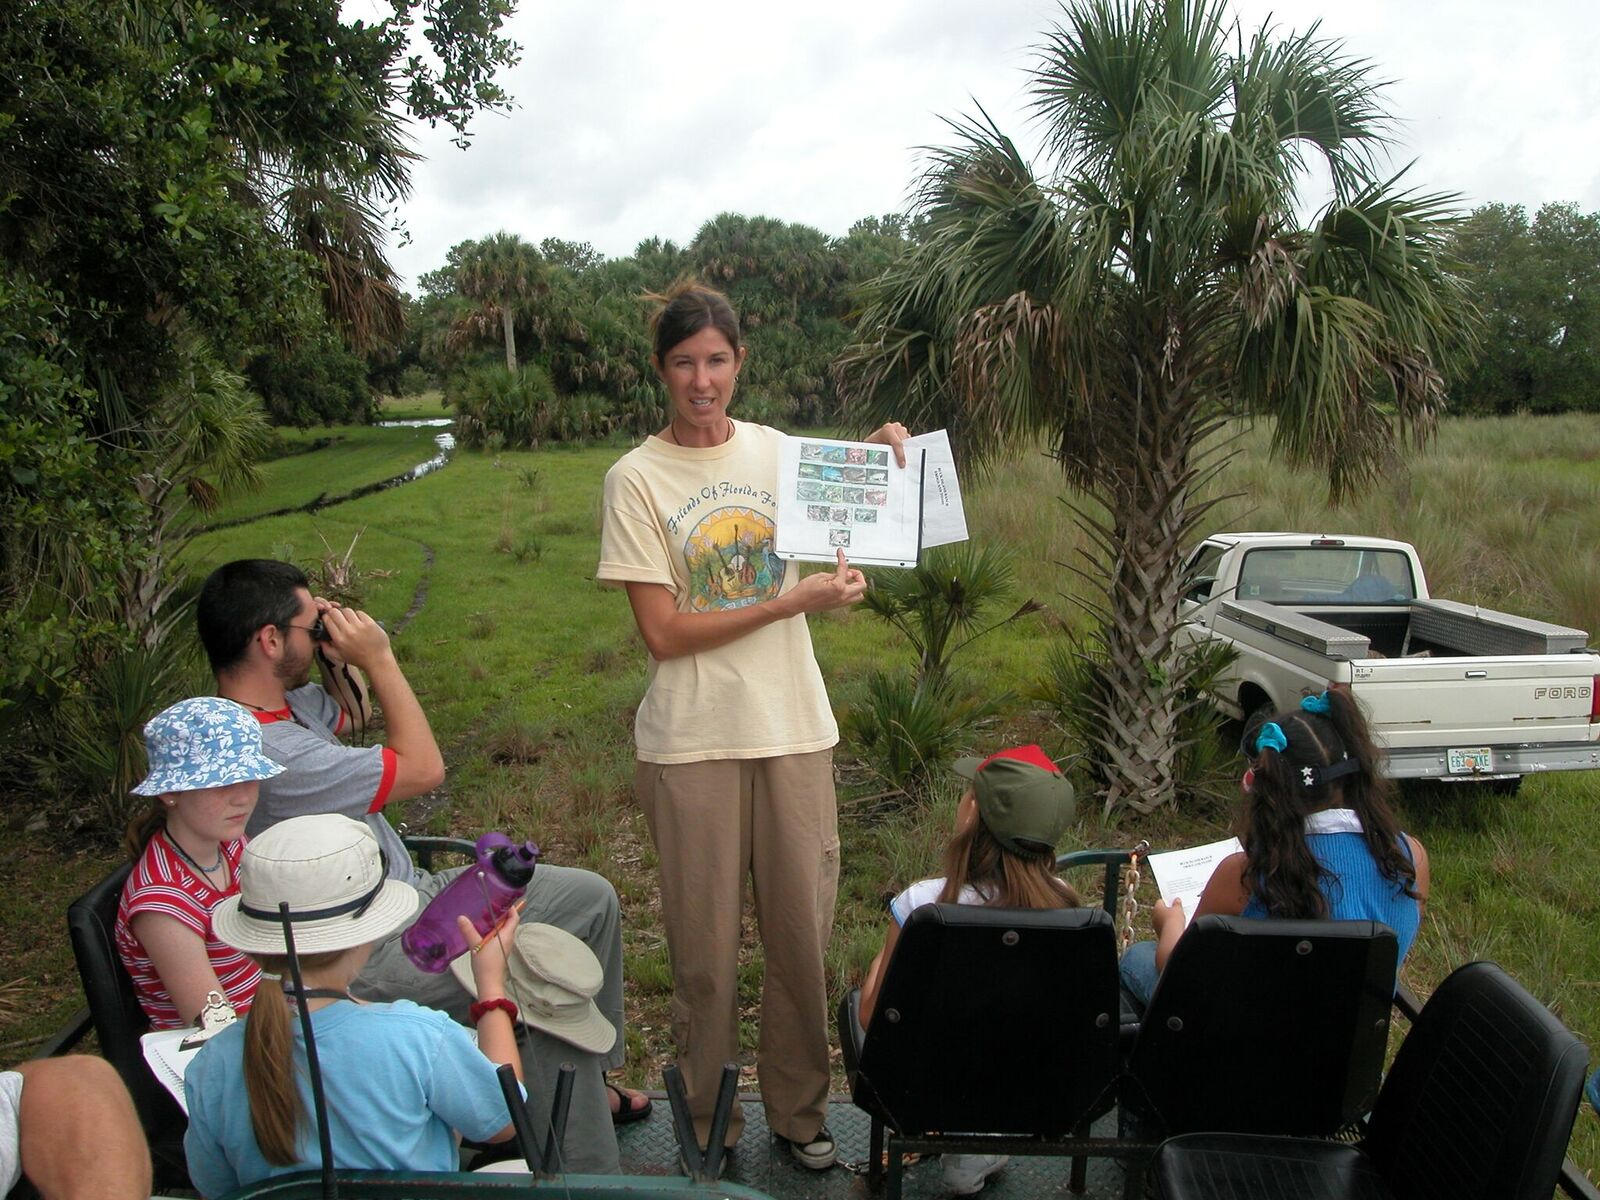 Tour group gets an amphibian talk